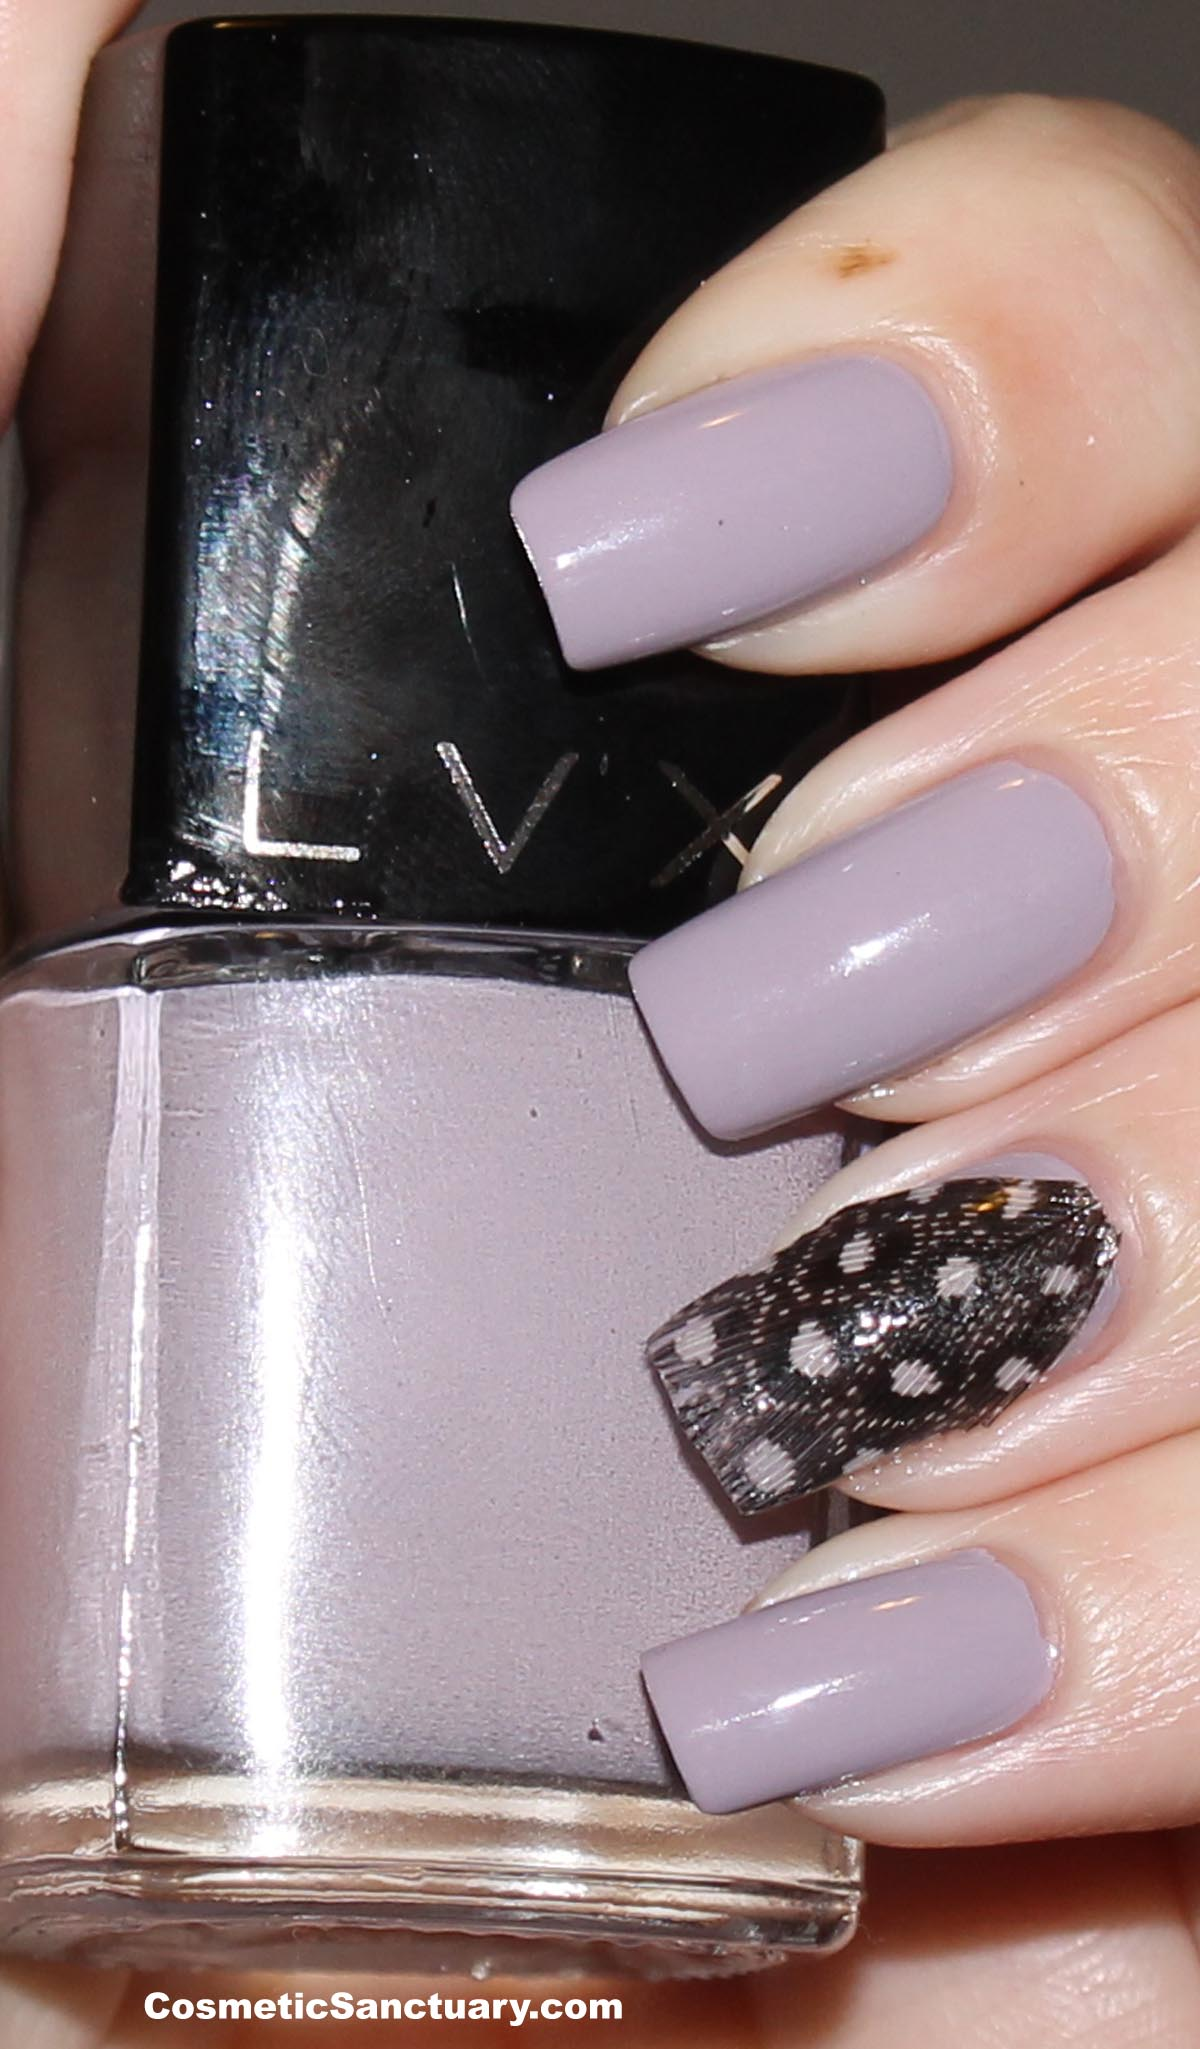 November Nail Art Society – Feather Manicure | Cosmetic Sanctuary